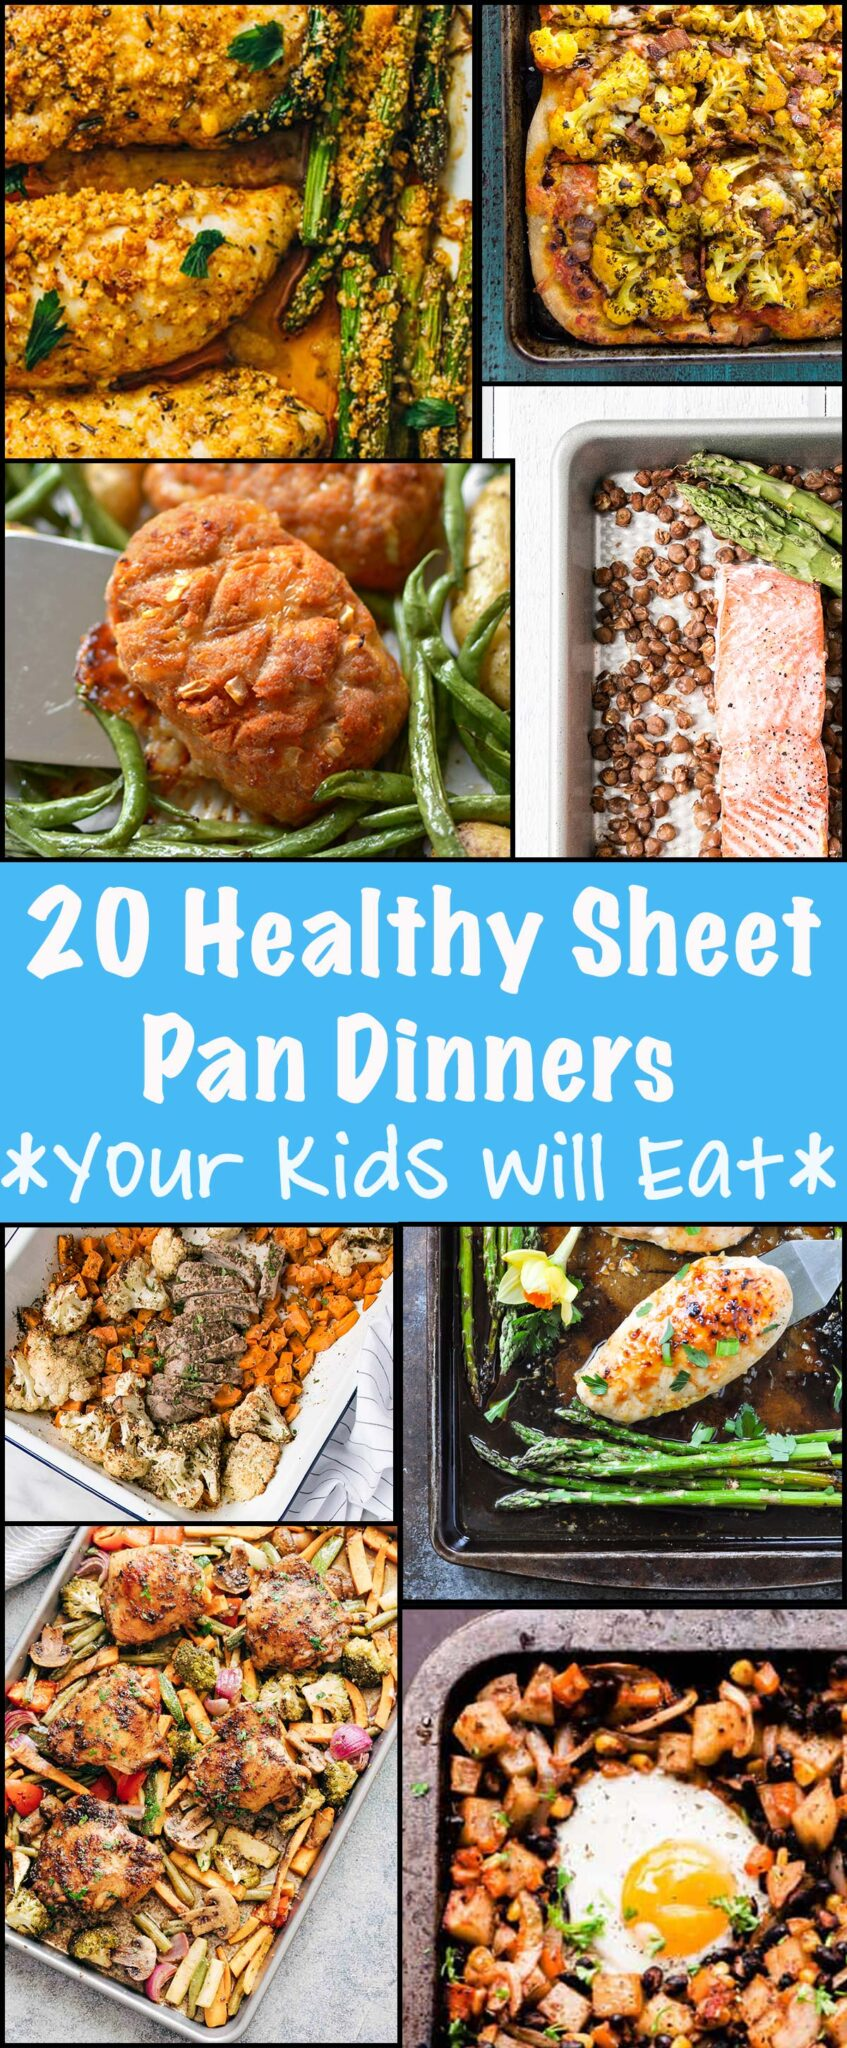 20 Healthy Sheet Pan Dinners Your Kids Will Actually Eat. #healthy #sheetpan #mealprep #kid-friendly